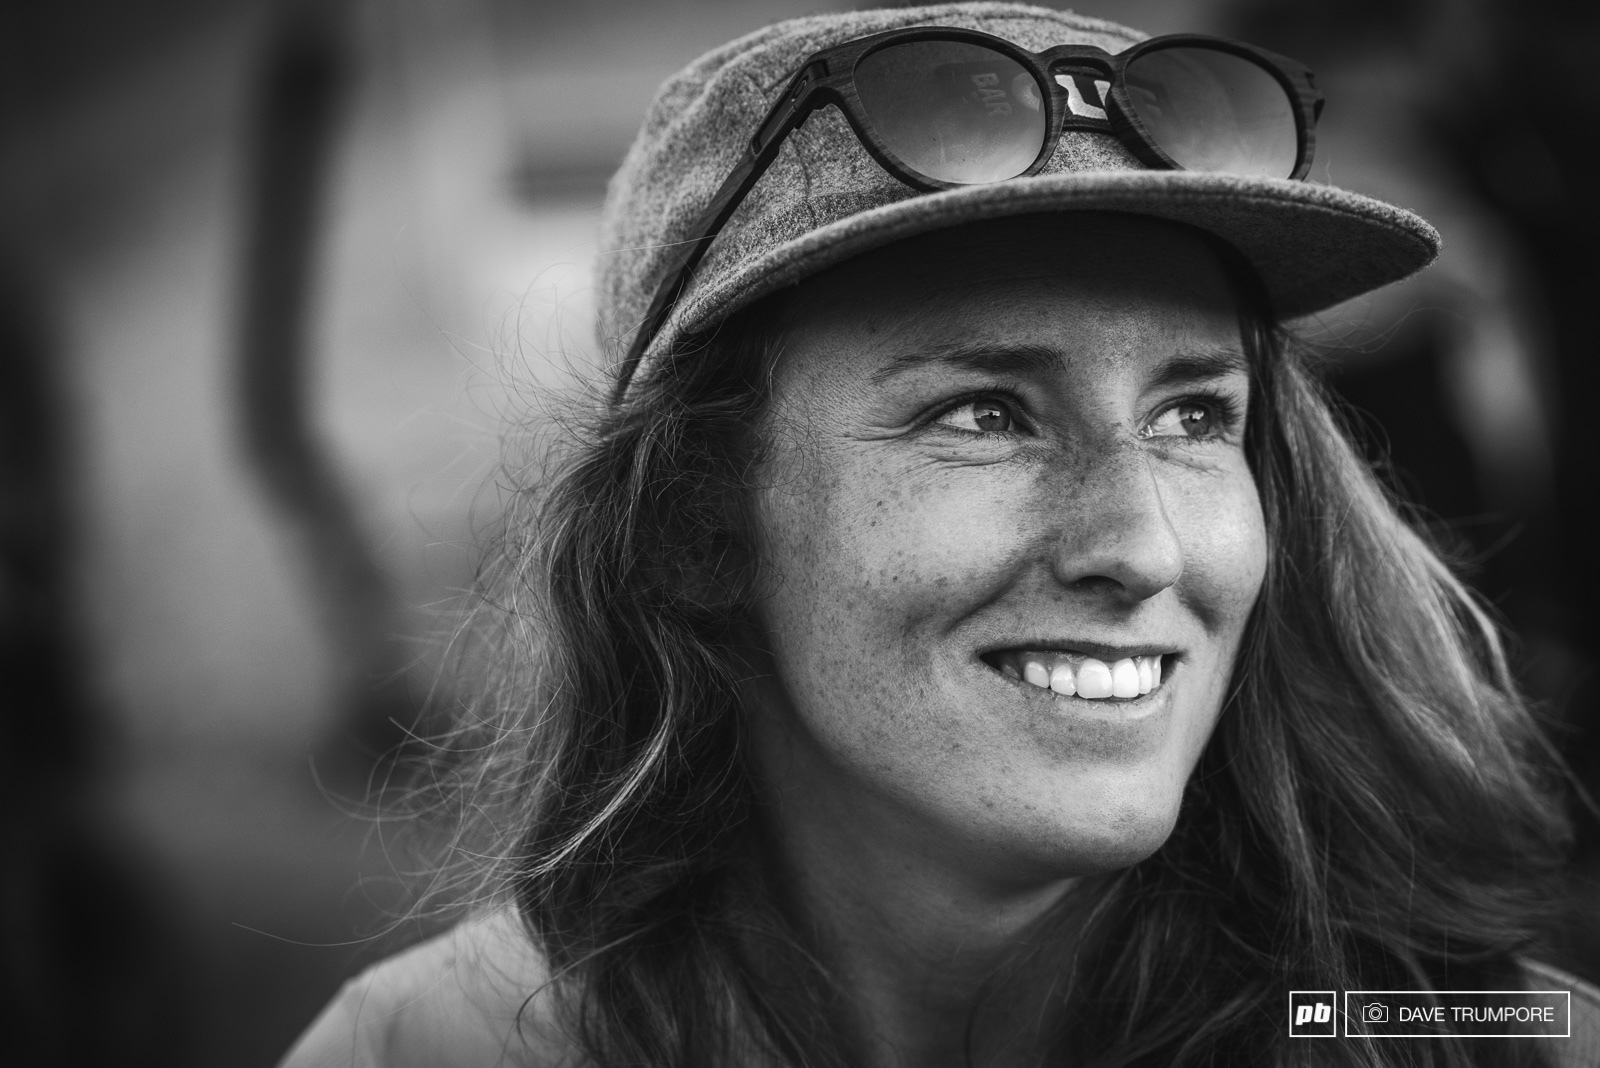 All Smiles from Casey Brown finishing 3rd and showing why she is one of the most talented riders out there.